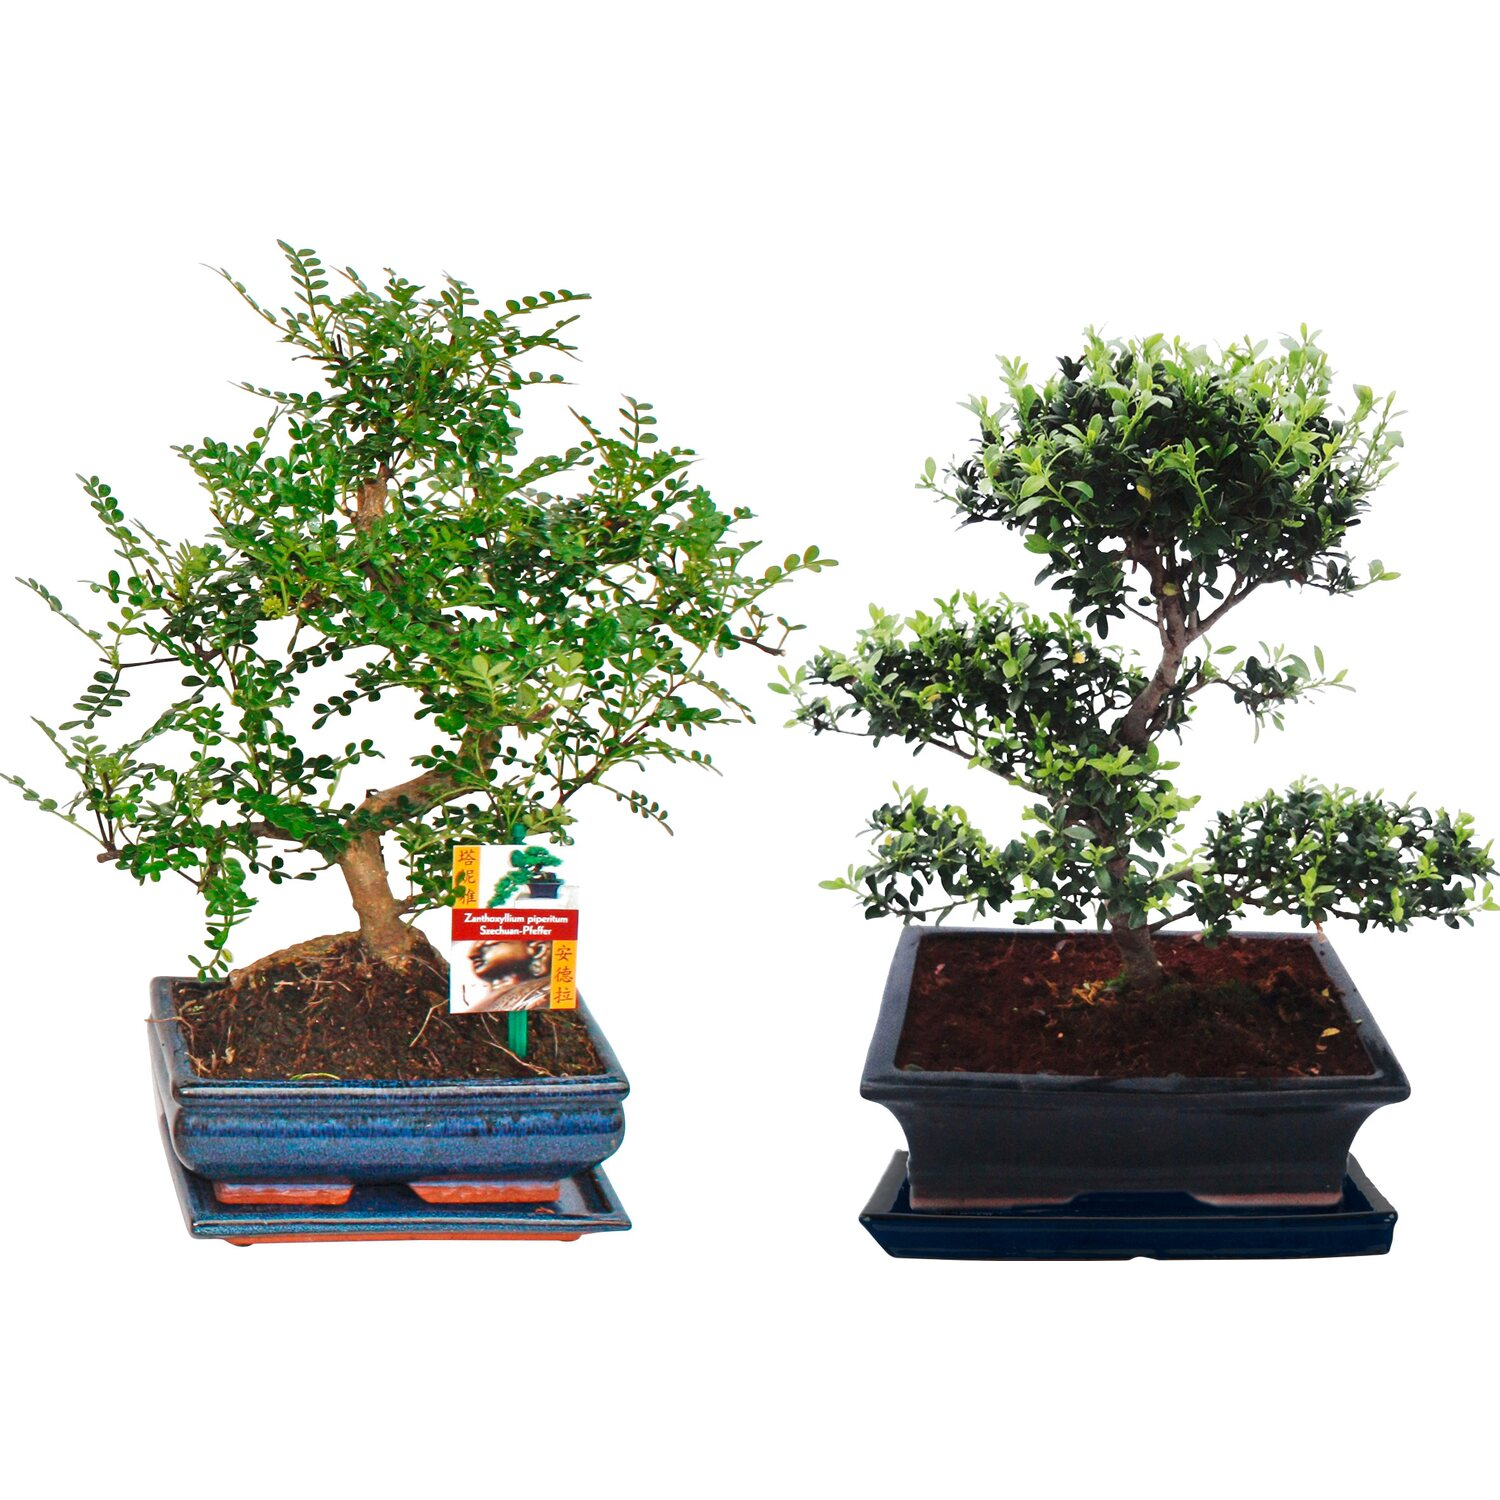 bonsai baum pflege ficus ginseng als bonsai bonsai fr einsteger die birkenfeige ficus wie. Black Bedroom Furniture Sets. Home Design Ideas